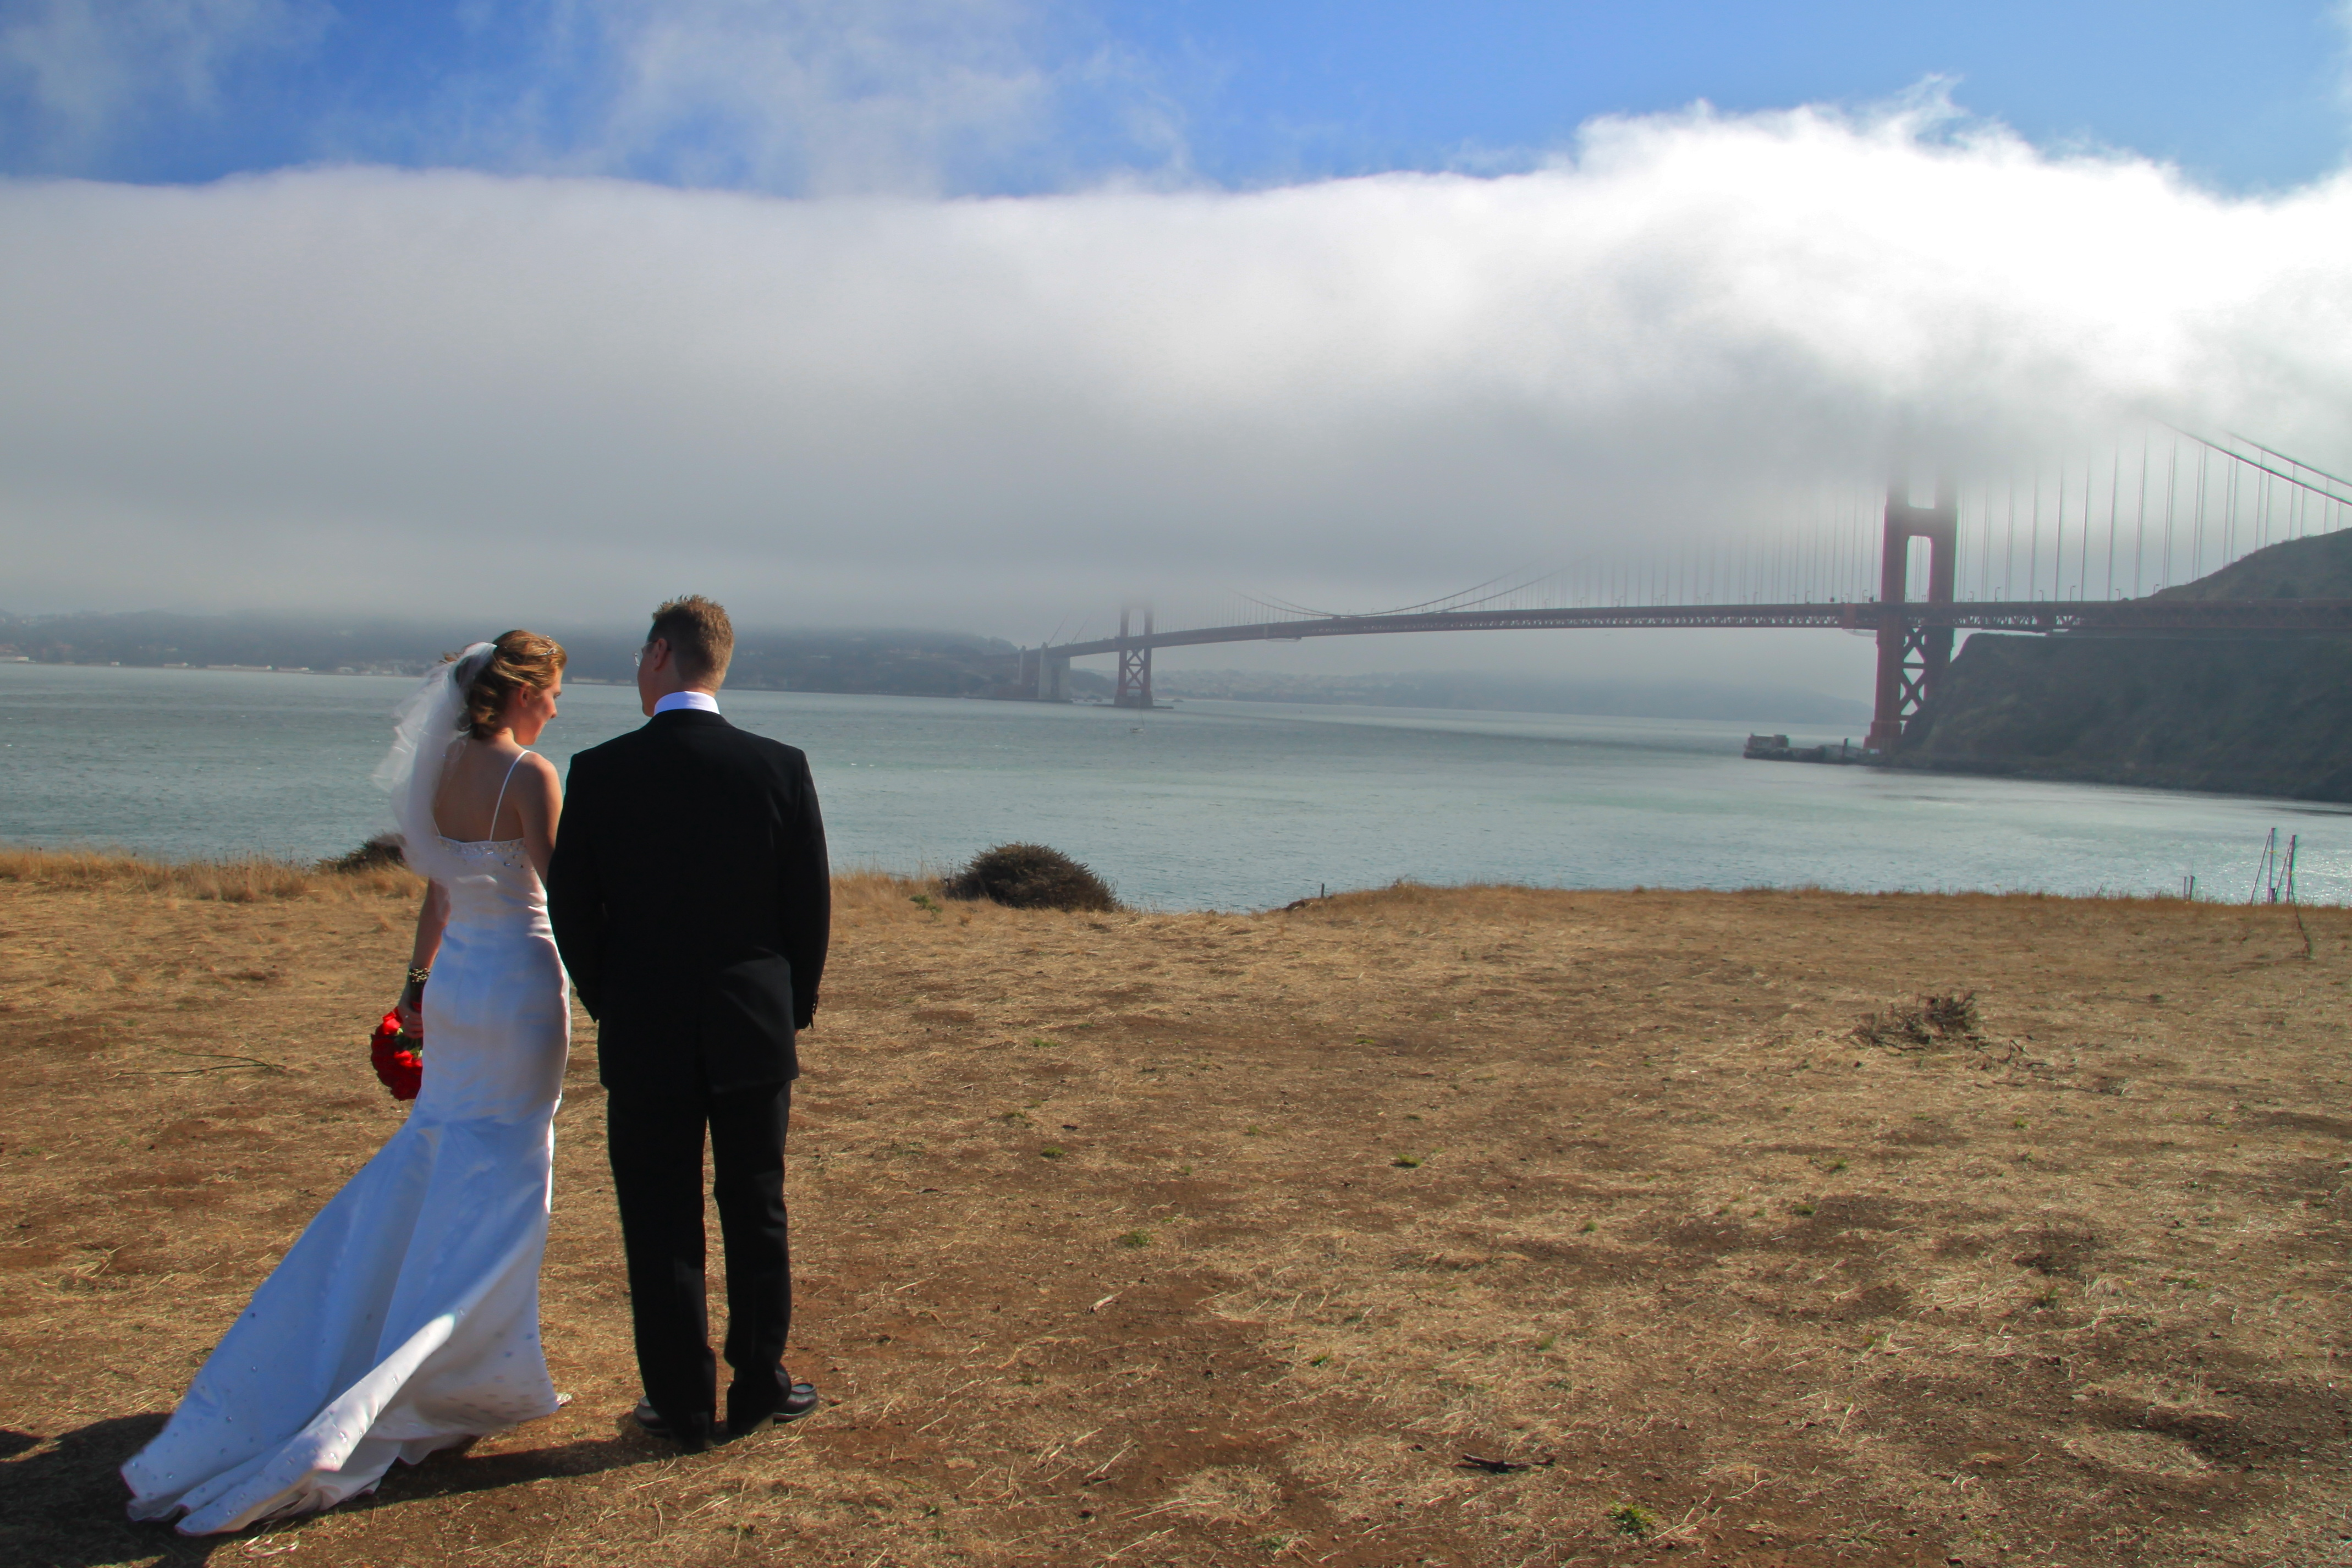 Ceremony, Flowers & Decor, Destinations, Beach, Garden, Beach Wedding Flowers & Decor, Gate, Destination, Weddings, Golden, San, Francisco, Bridge, San francisco destination weddings